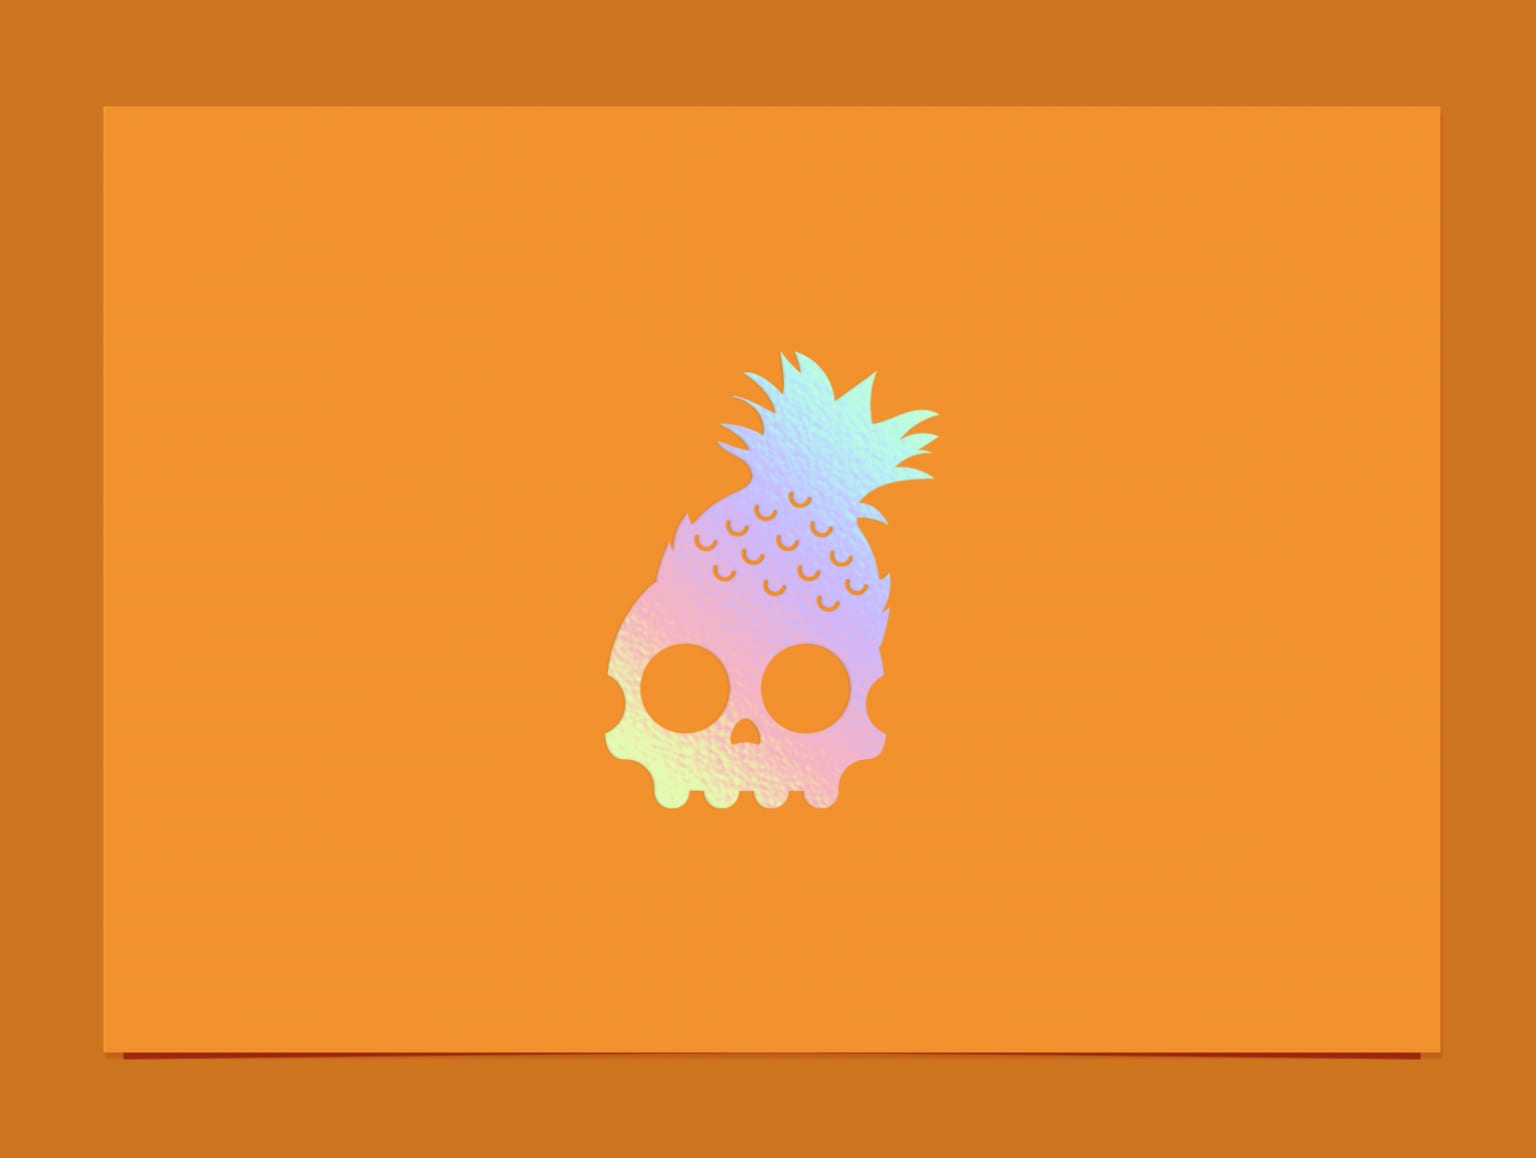 The Almighty Pineapple